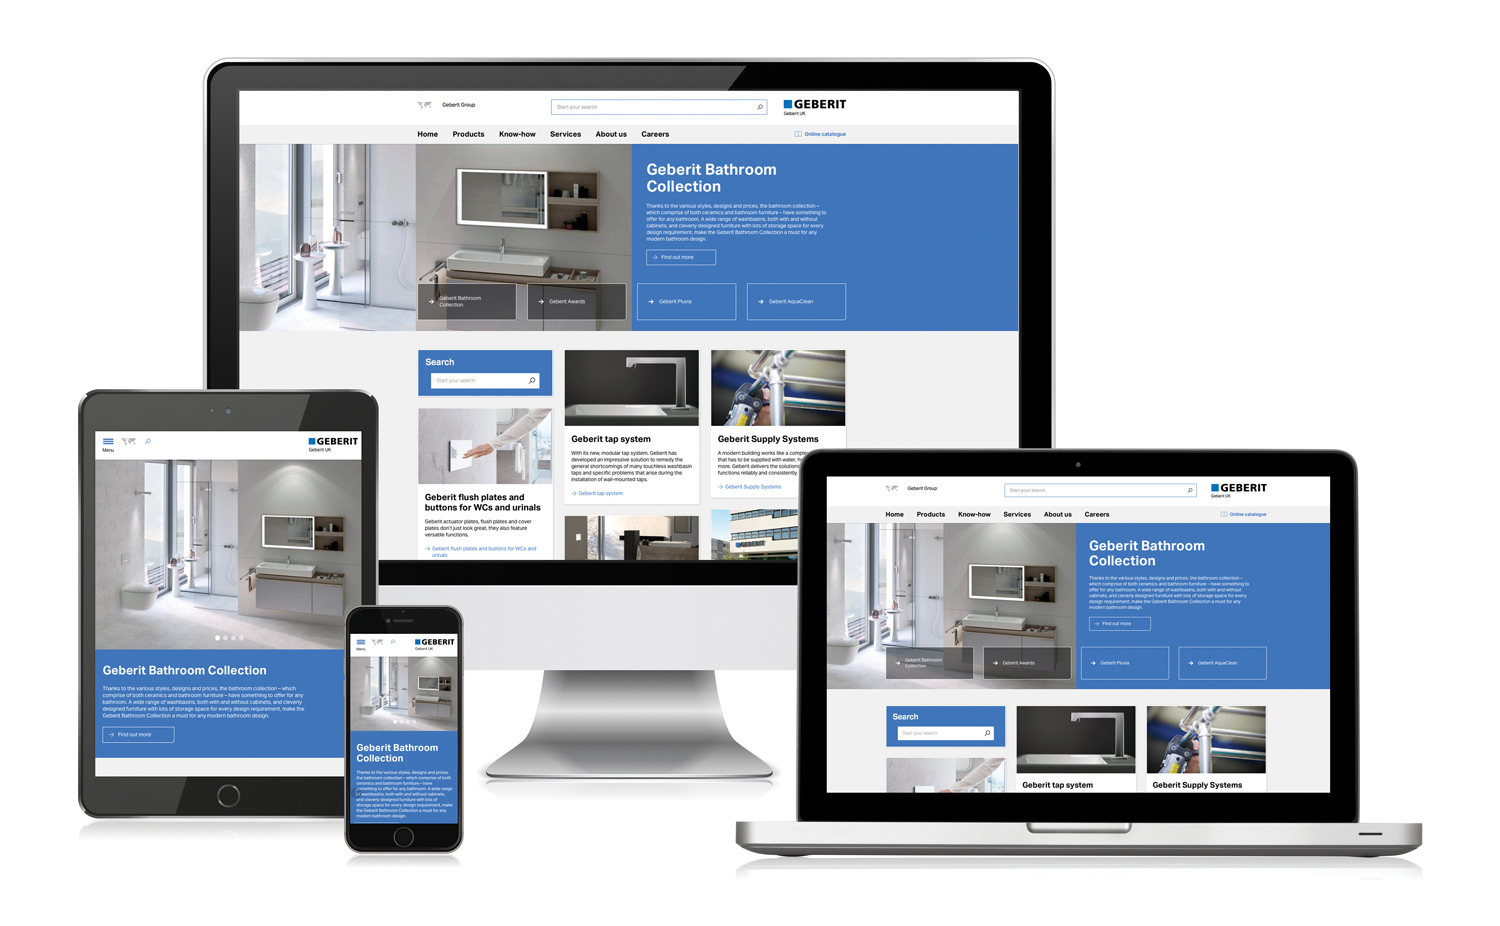 New-look Geberit website offers a more user-friendly experience ...